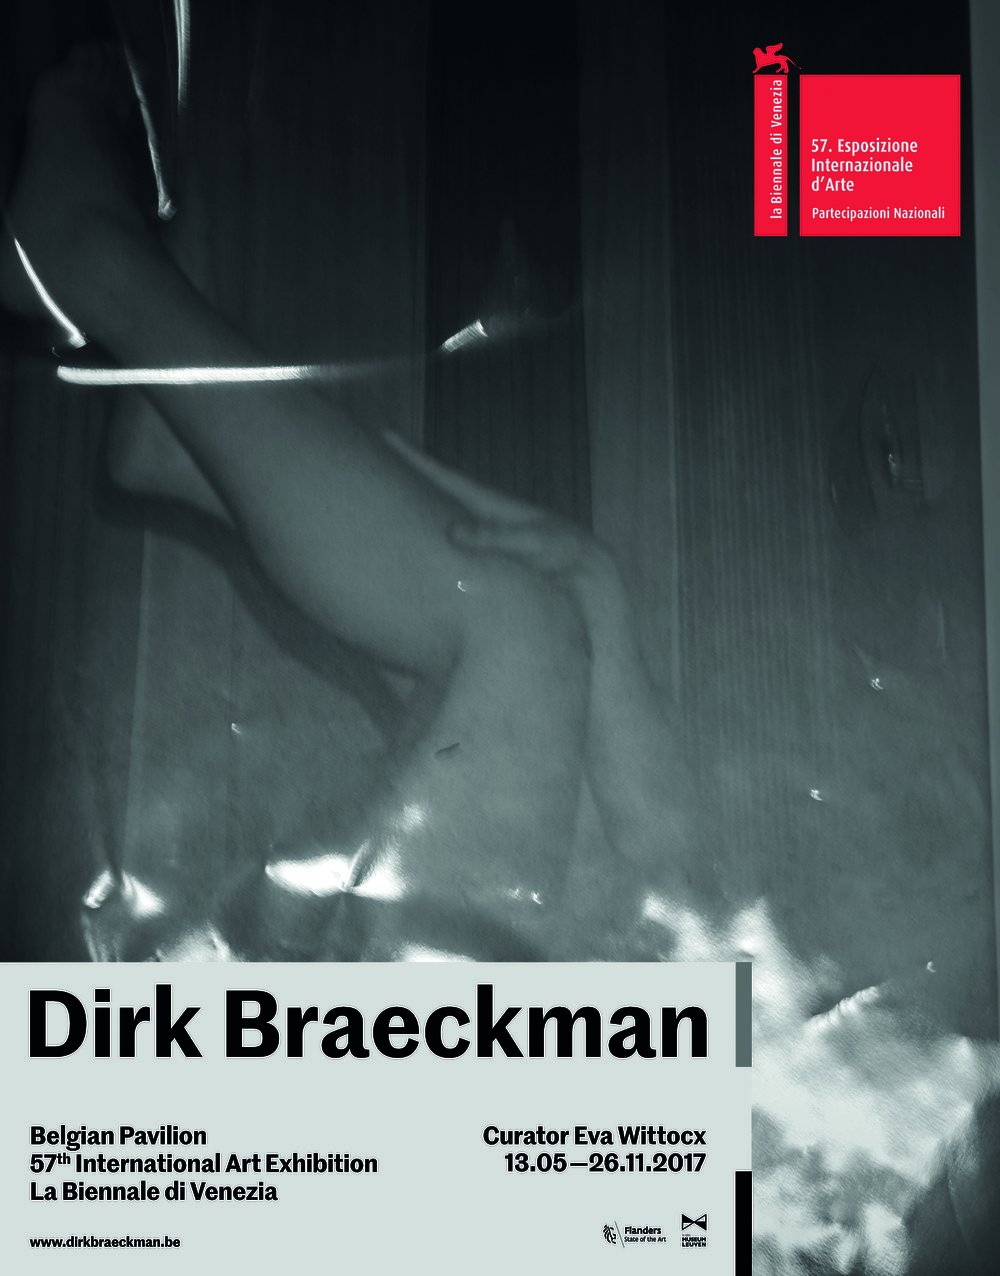 Dirk Braeckman creates new work for the Belgian Pavilion